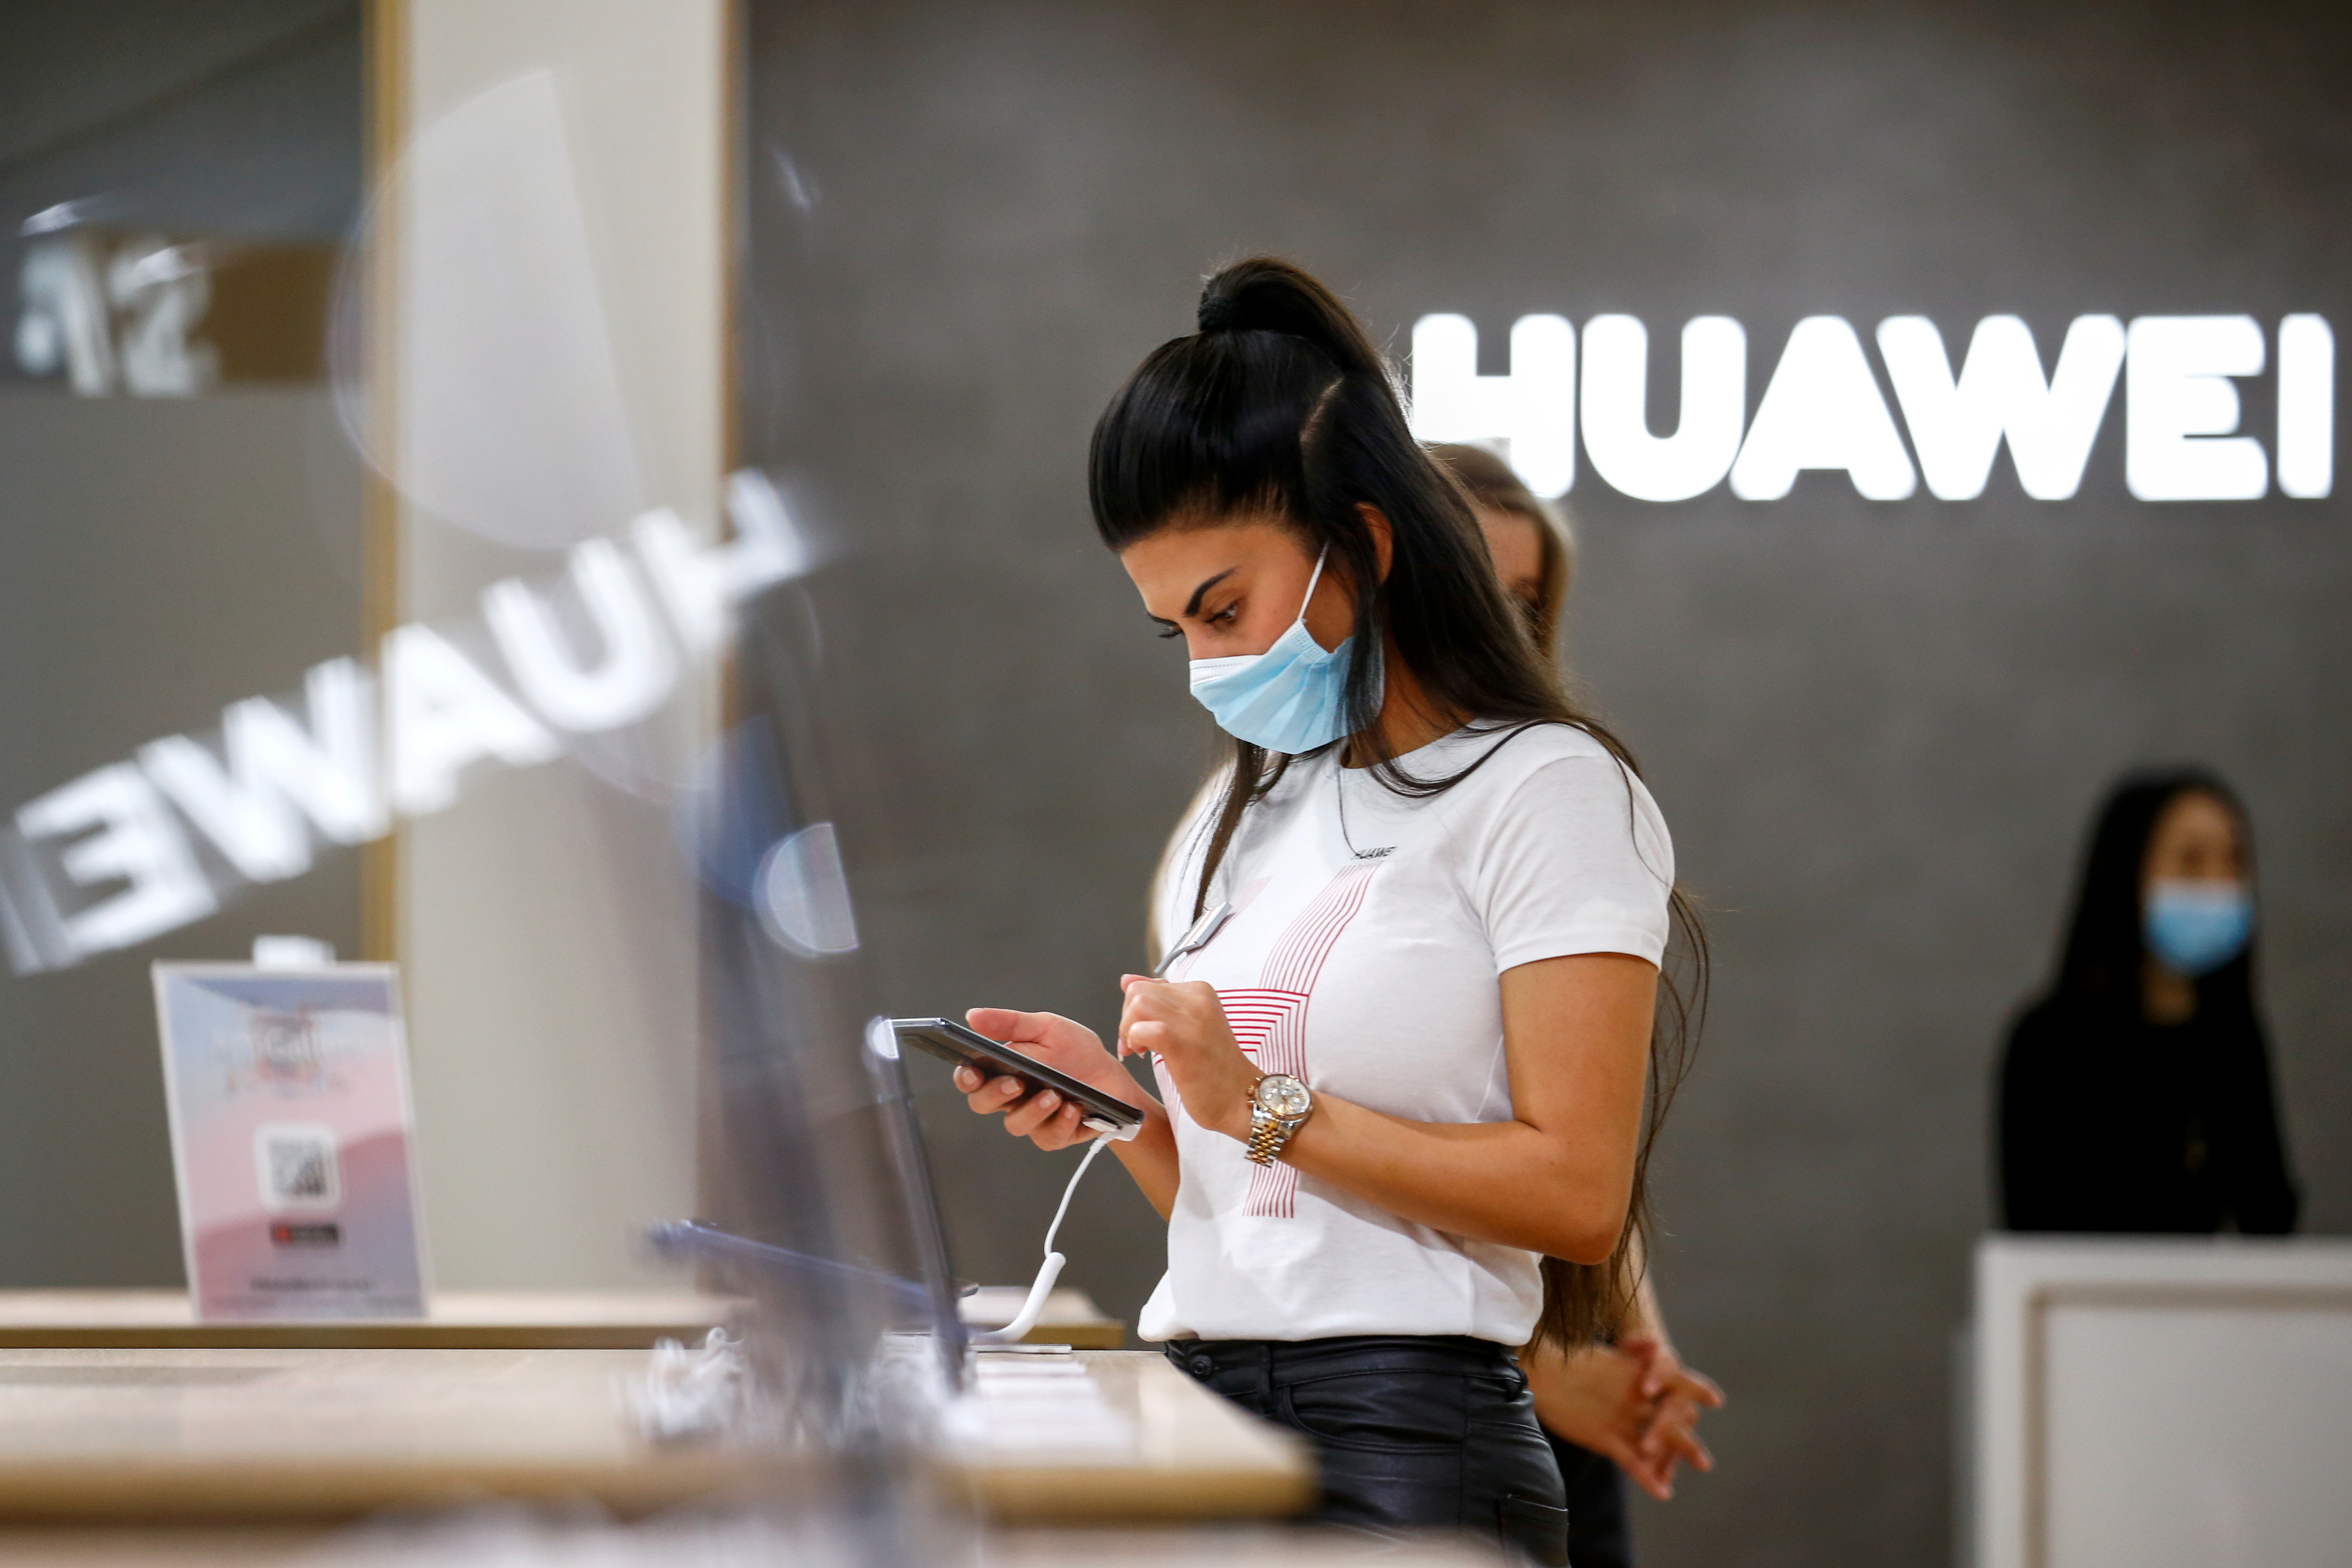 An employee uses a Huawei P40 smartphone at the IFA consumer technology fair, amid the coronavirus disease (COVID-19) outbreak, in Berlin, Germany September 3, 2020.  REUTERS/Michele Tantussi/File Photo